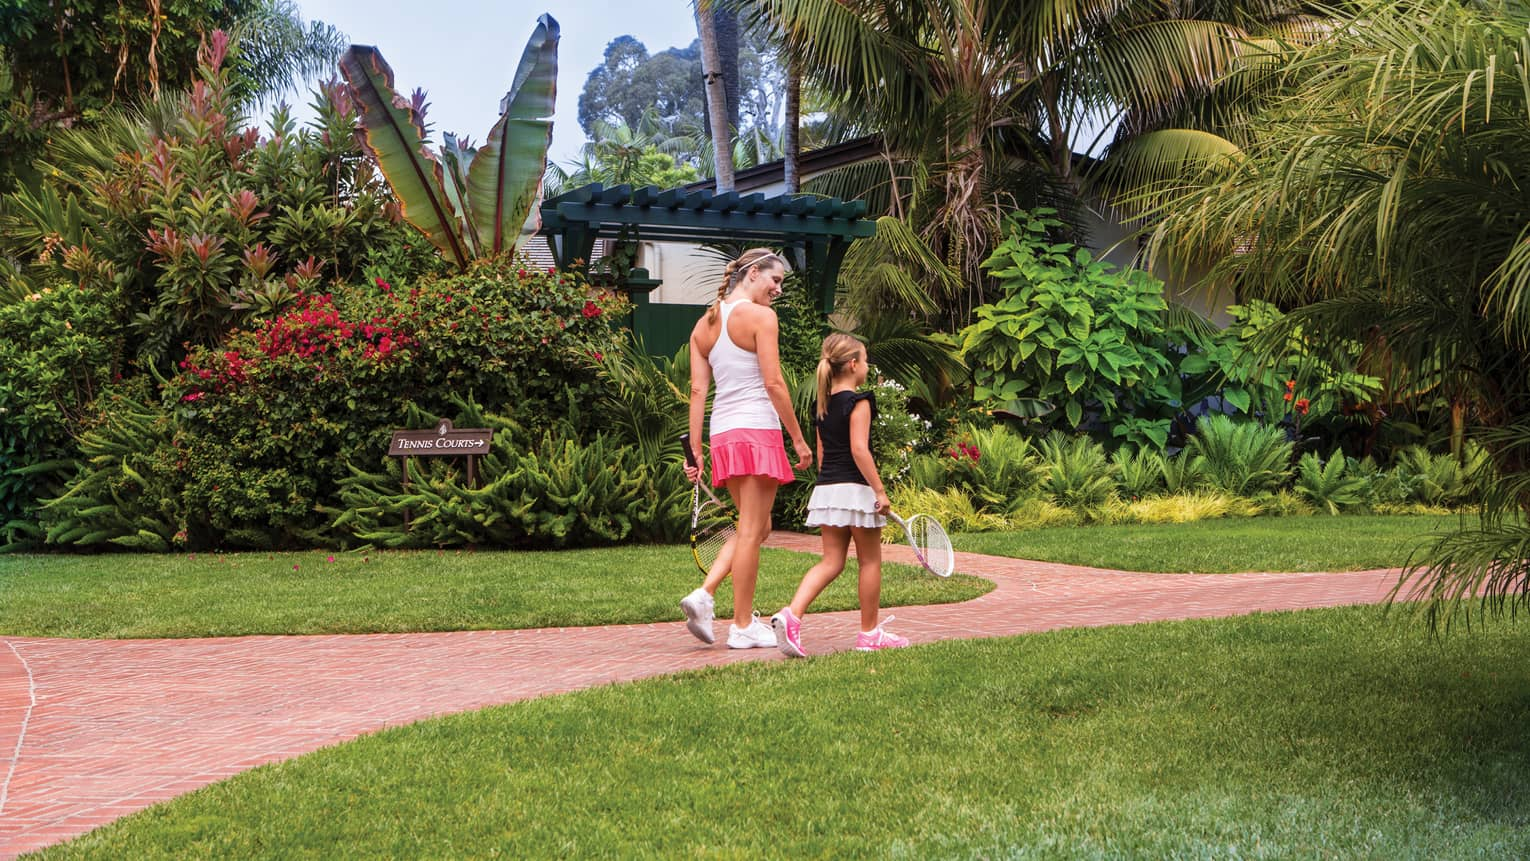 Woman and young girl holding tennis rackets walk down brick path, tropical garden